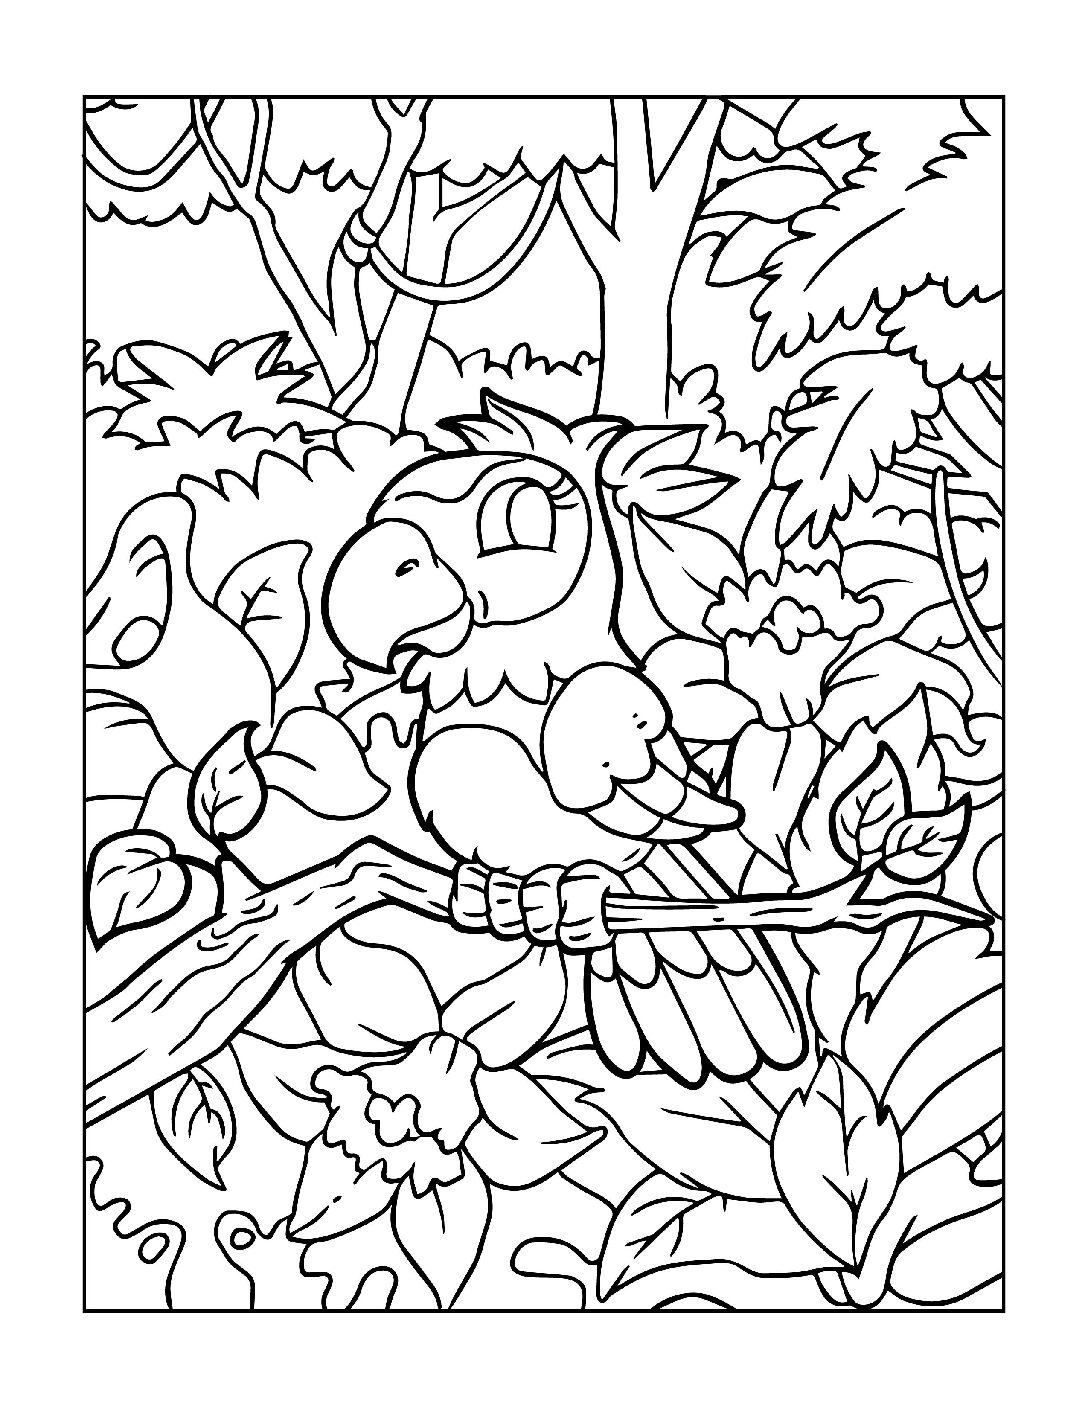 Coloring-Pages-Zoo-Animals-6-01-1-pdf Free Printable  Zoo Animals Colouring Pages